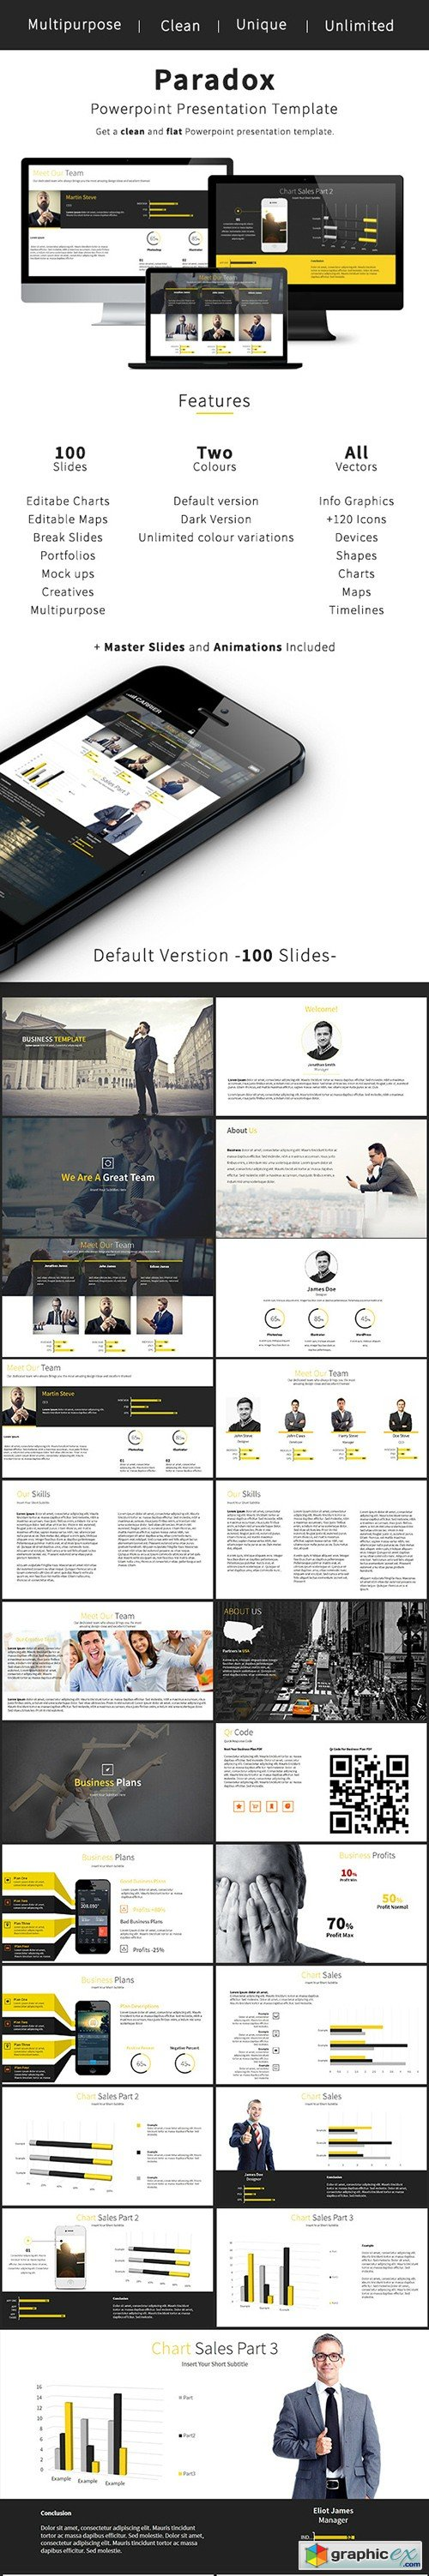 Paradox - Business Powerpoint Template